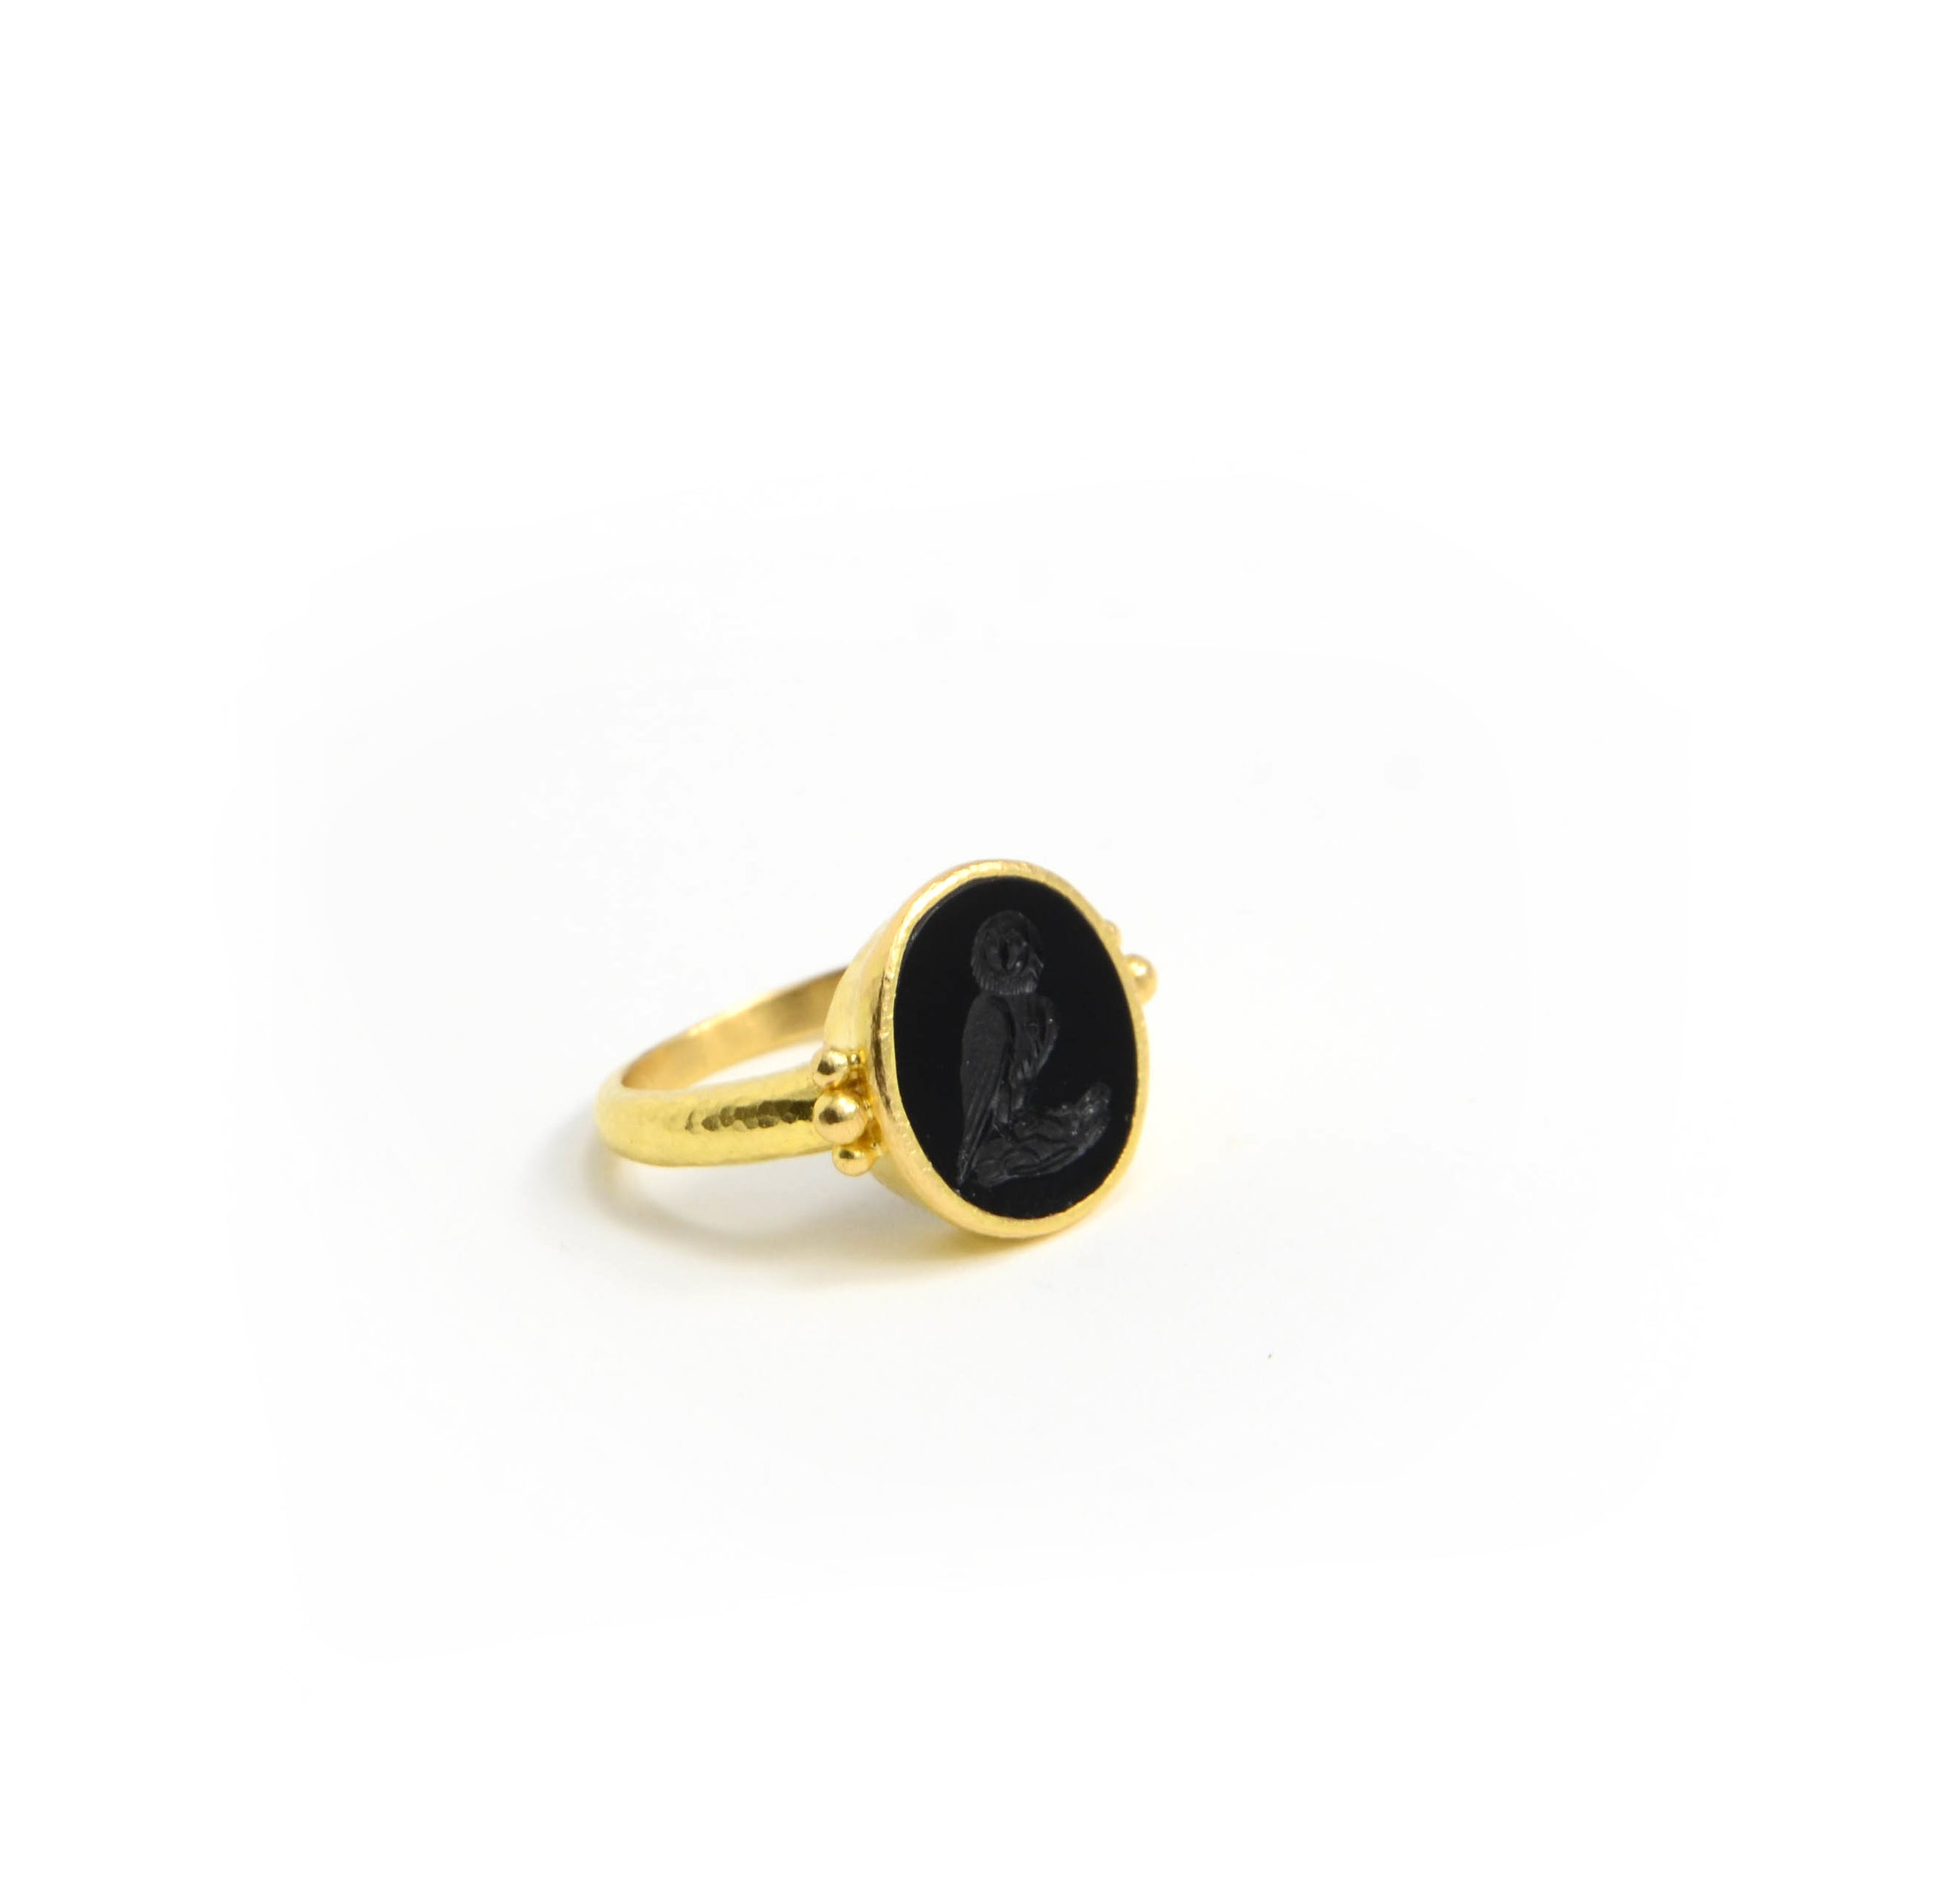 "Elizabeth locke jewels onyx ""owl"" intaglio ring. Oval intaglio set in 19 karat hand finished gold. triad details on narrow shank."